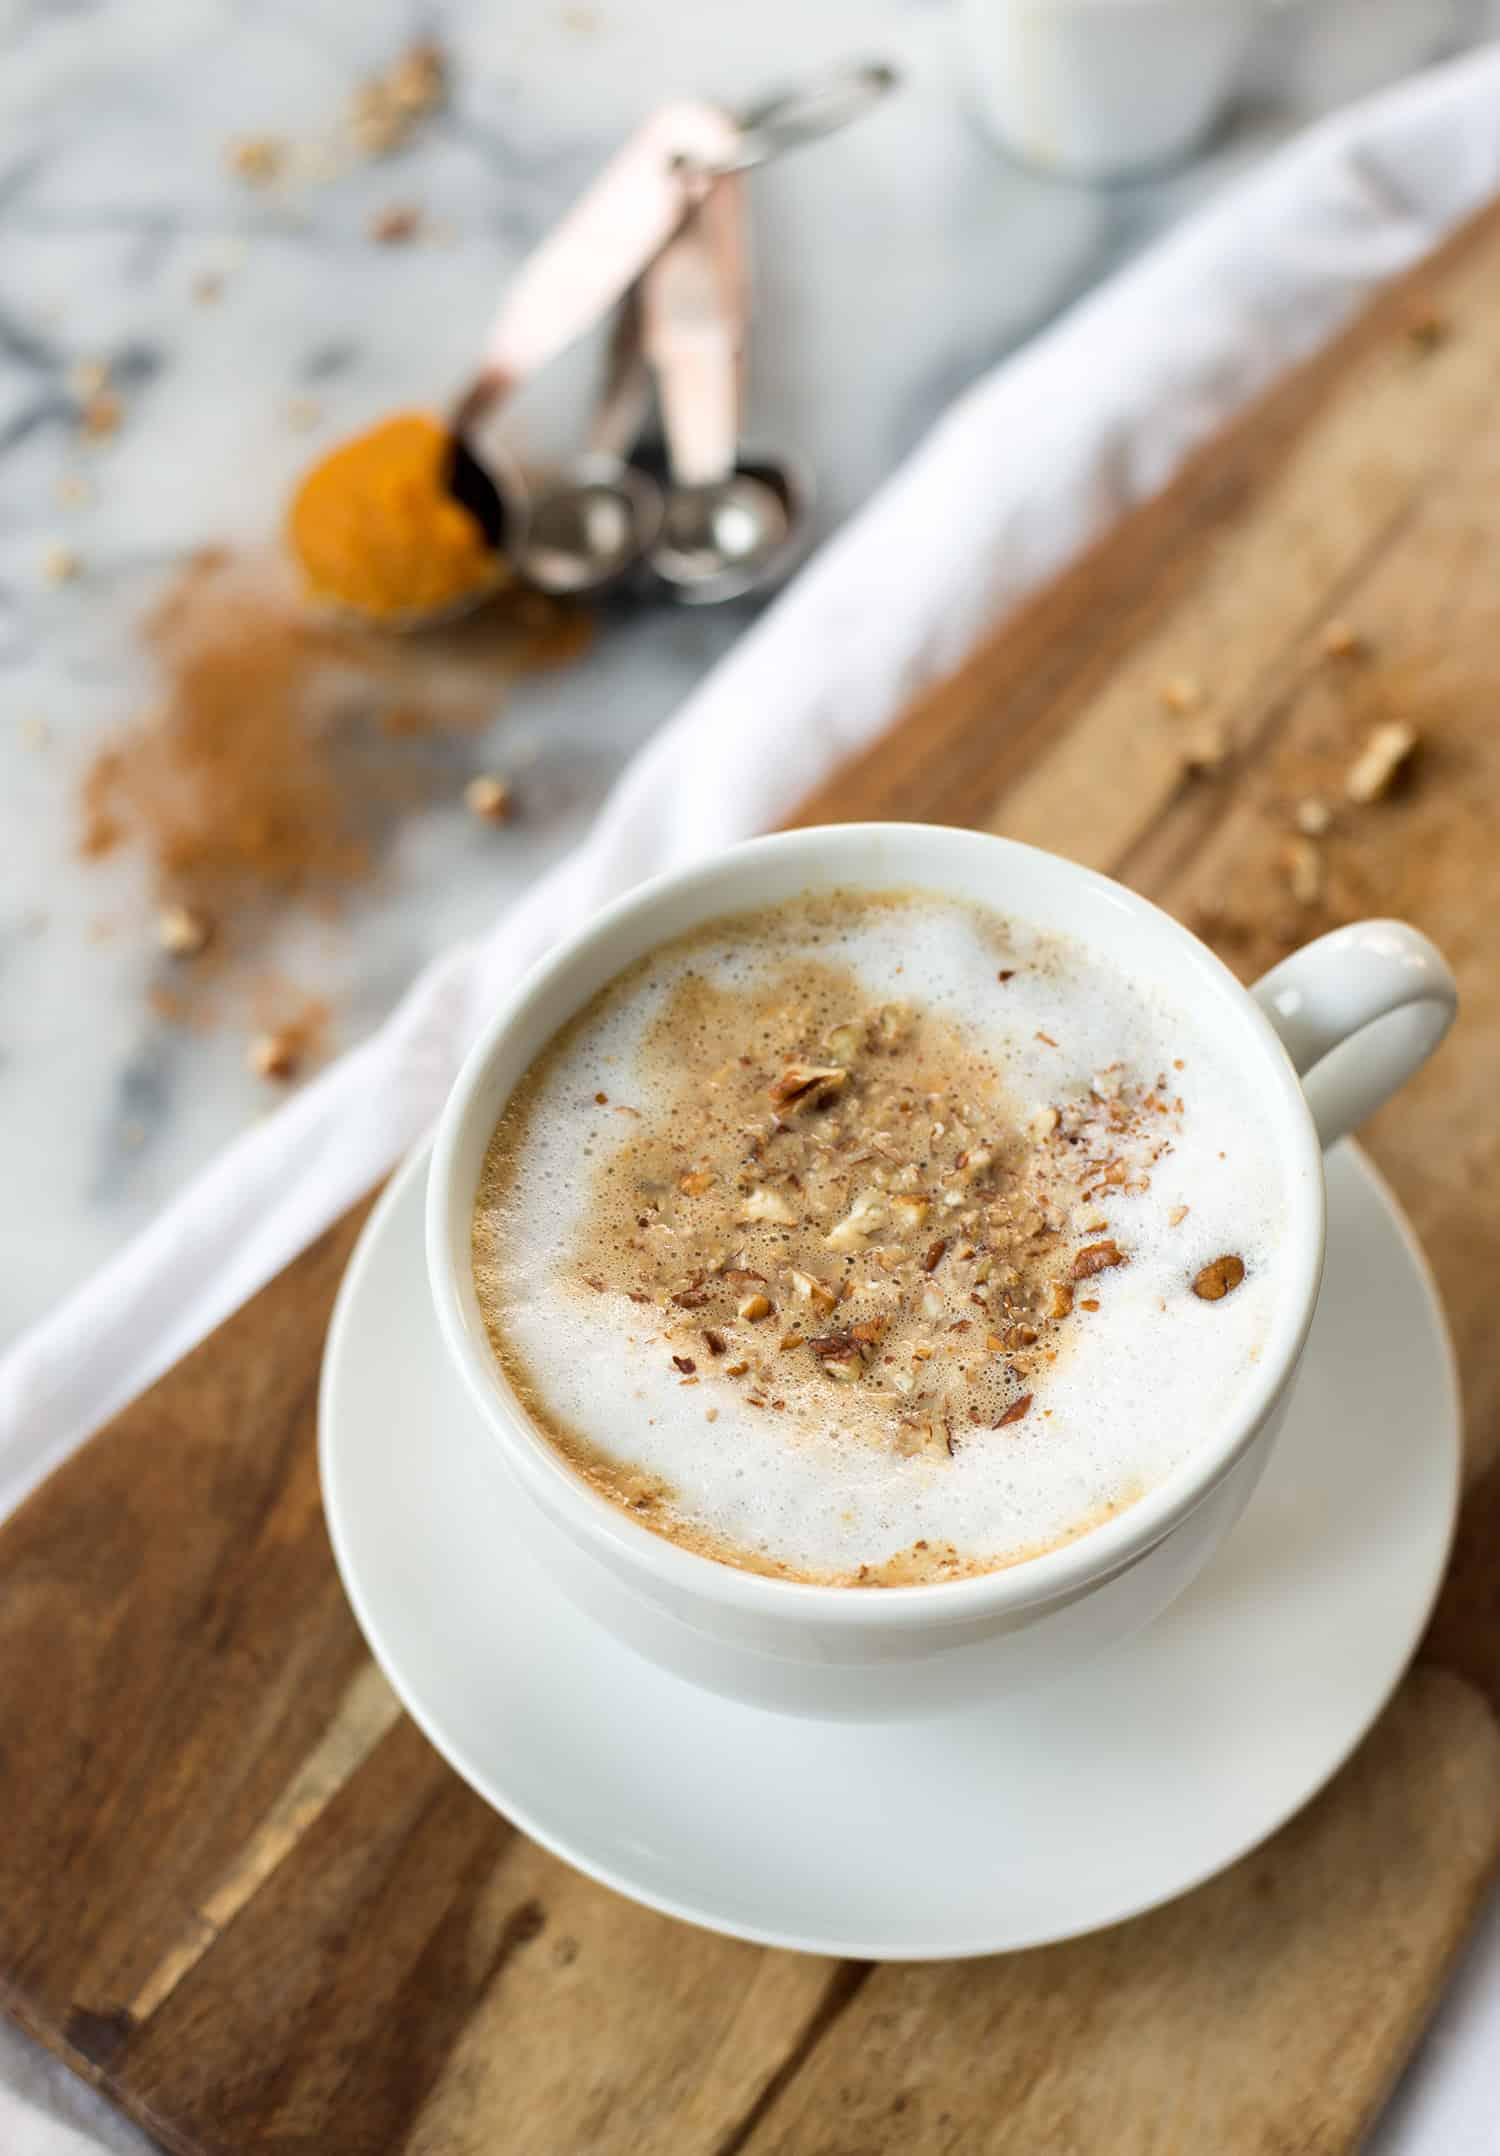 Pumpkin Oatmeal Latte! You've gotta try this breakfast and coffee combo. Pumpkin latte with rolled oats, so delicious and perfect for Fall. | www.delishknowledge.com